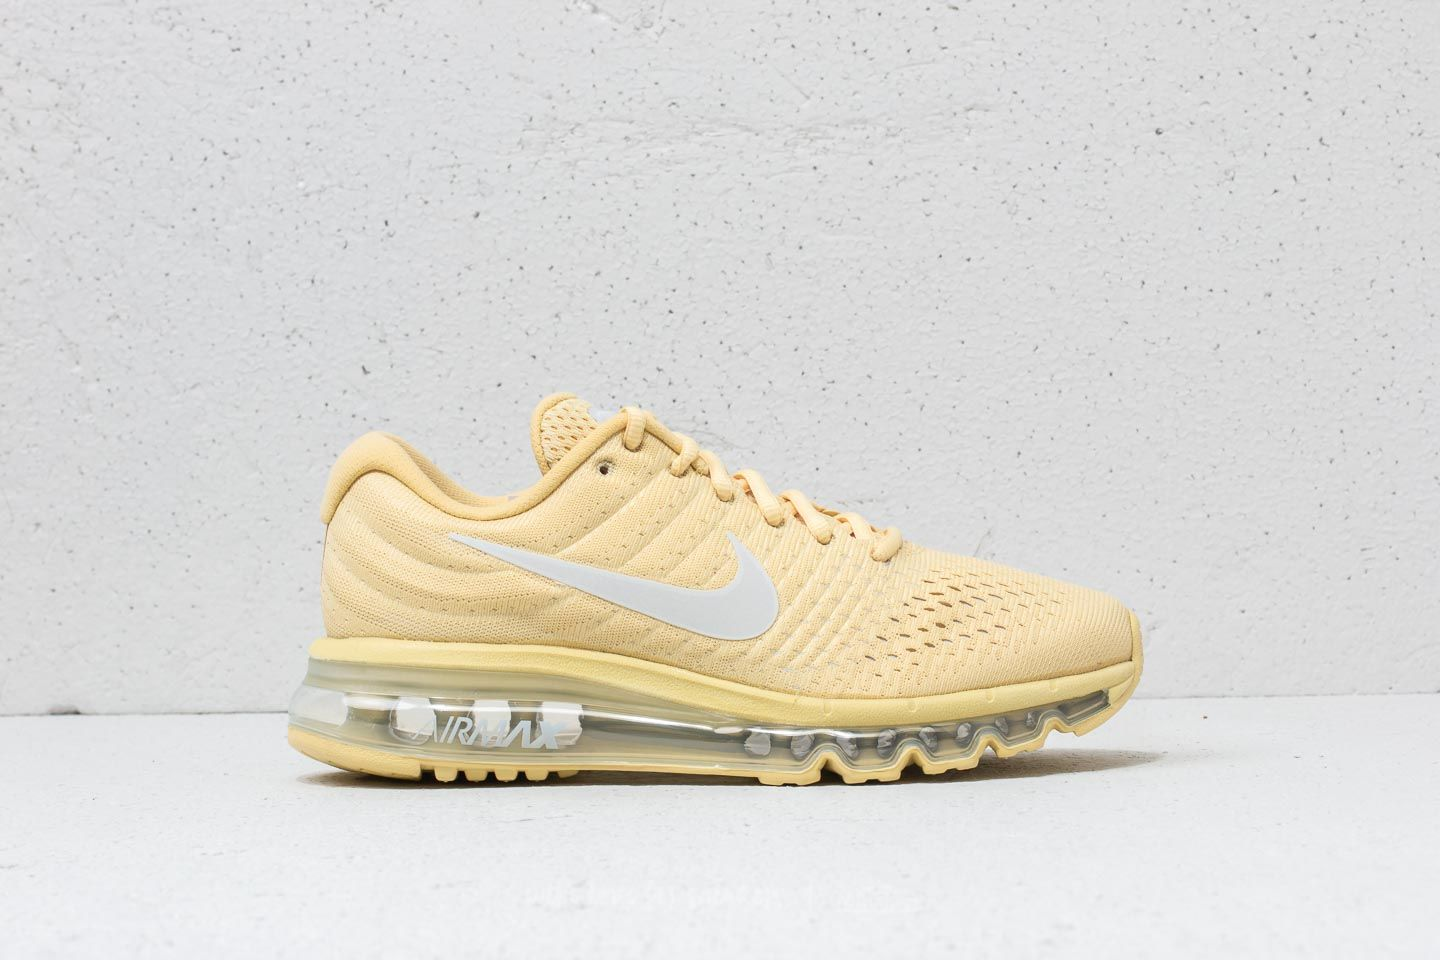 9b1edcaec1dd Nike WMNS Air Max 2017 SE Lemon Wash  Pure Platinum at a great price 191